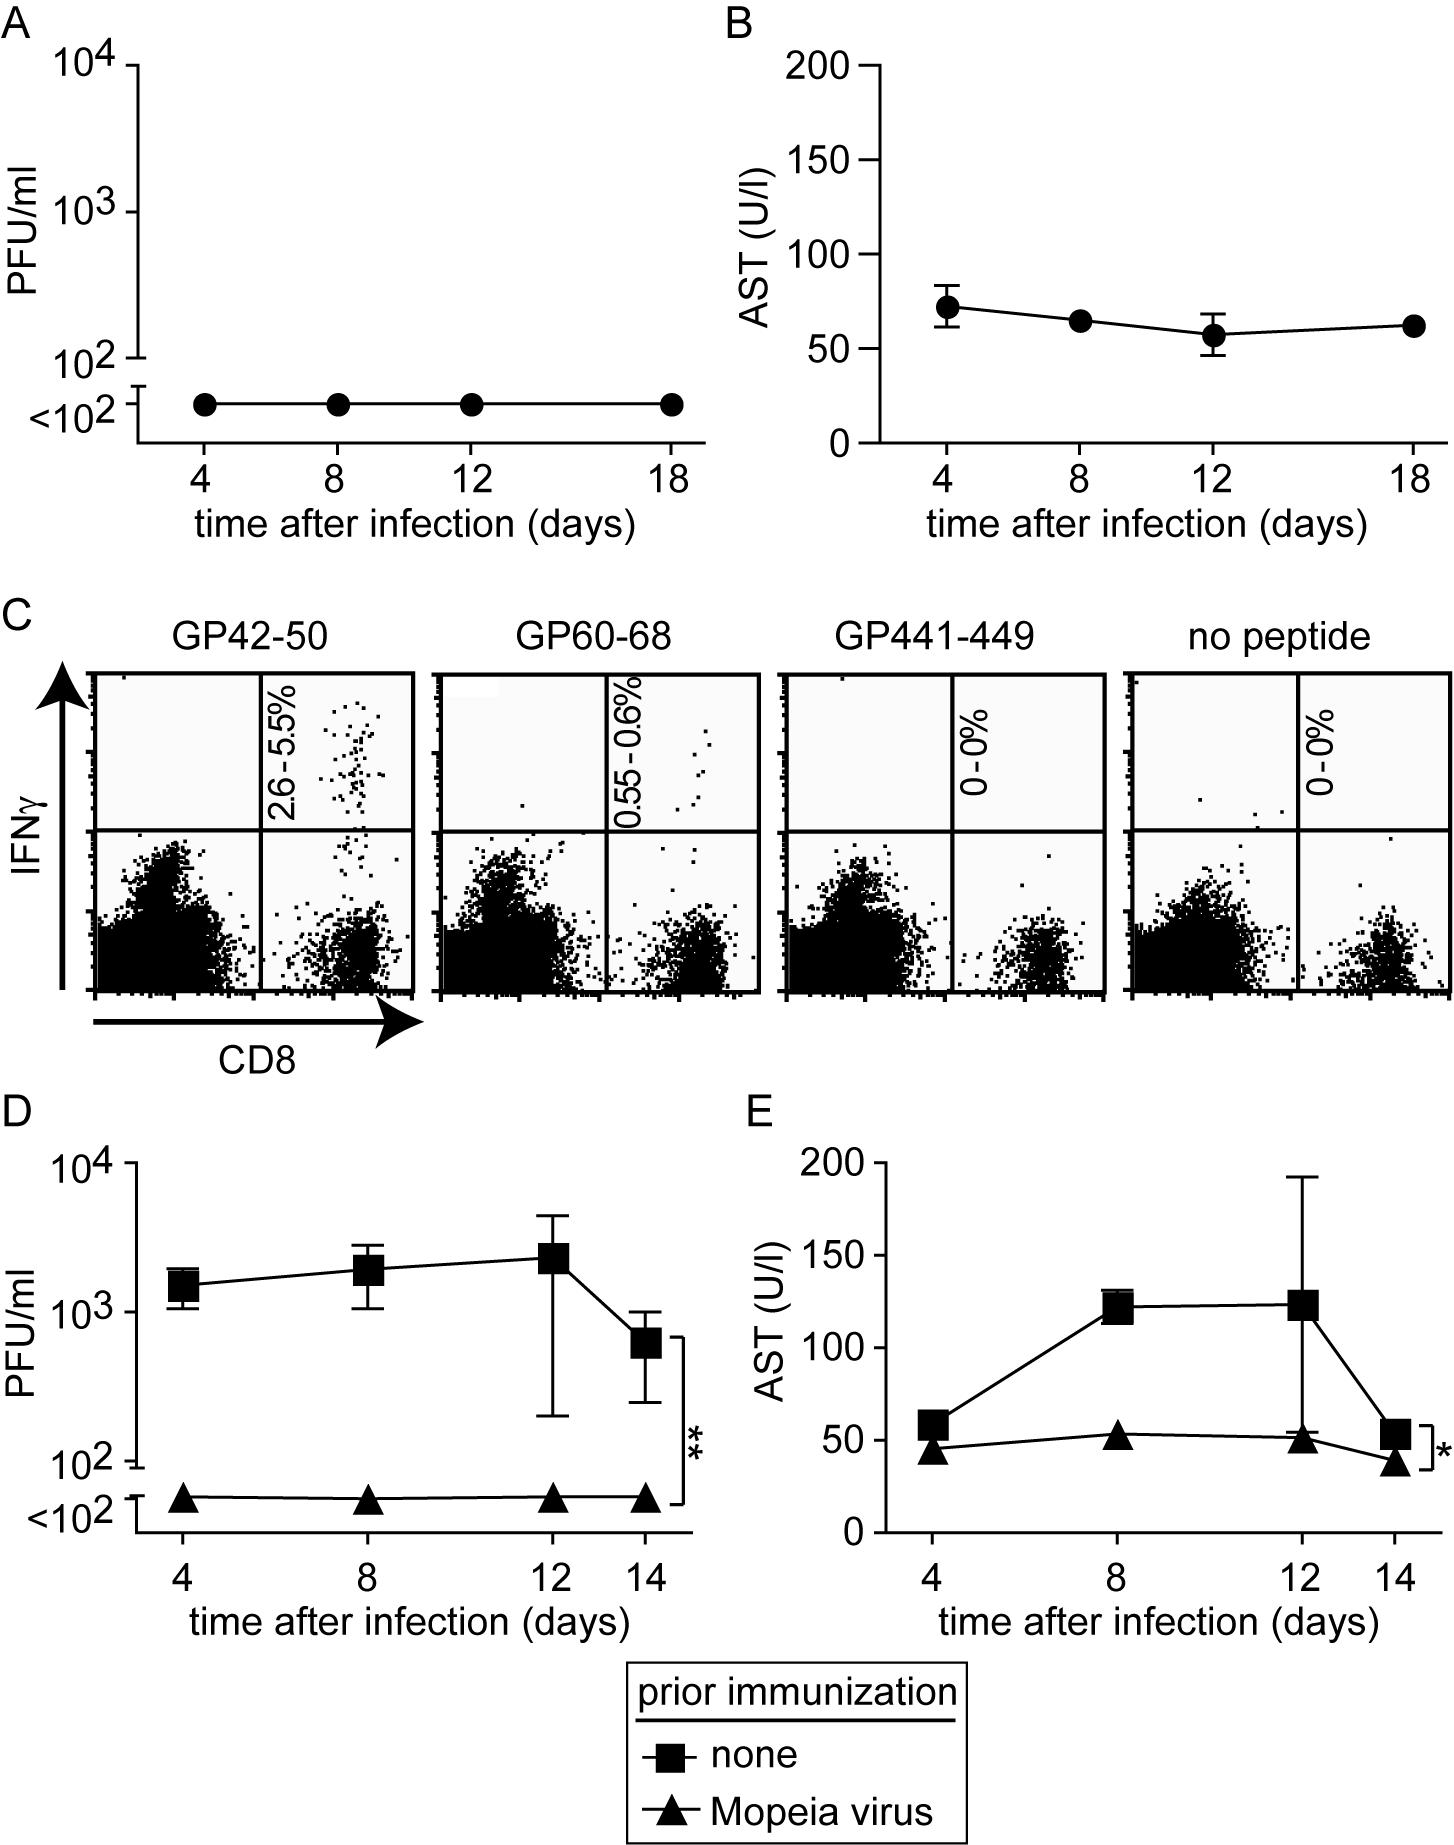 Mopeia virus (MV) infection is apathogenic in HHD mice but elicits LASV-specific HLA-A2.1-restricted CD8<sup>+</sup> T cells and protects against subsequent LASV challenge.